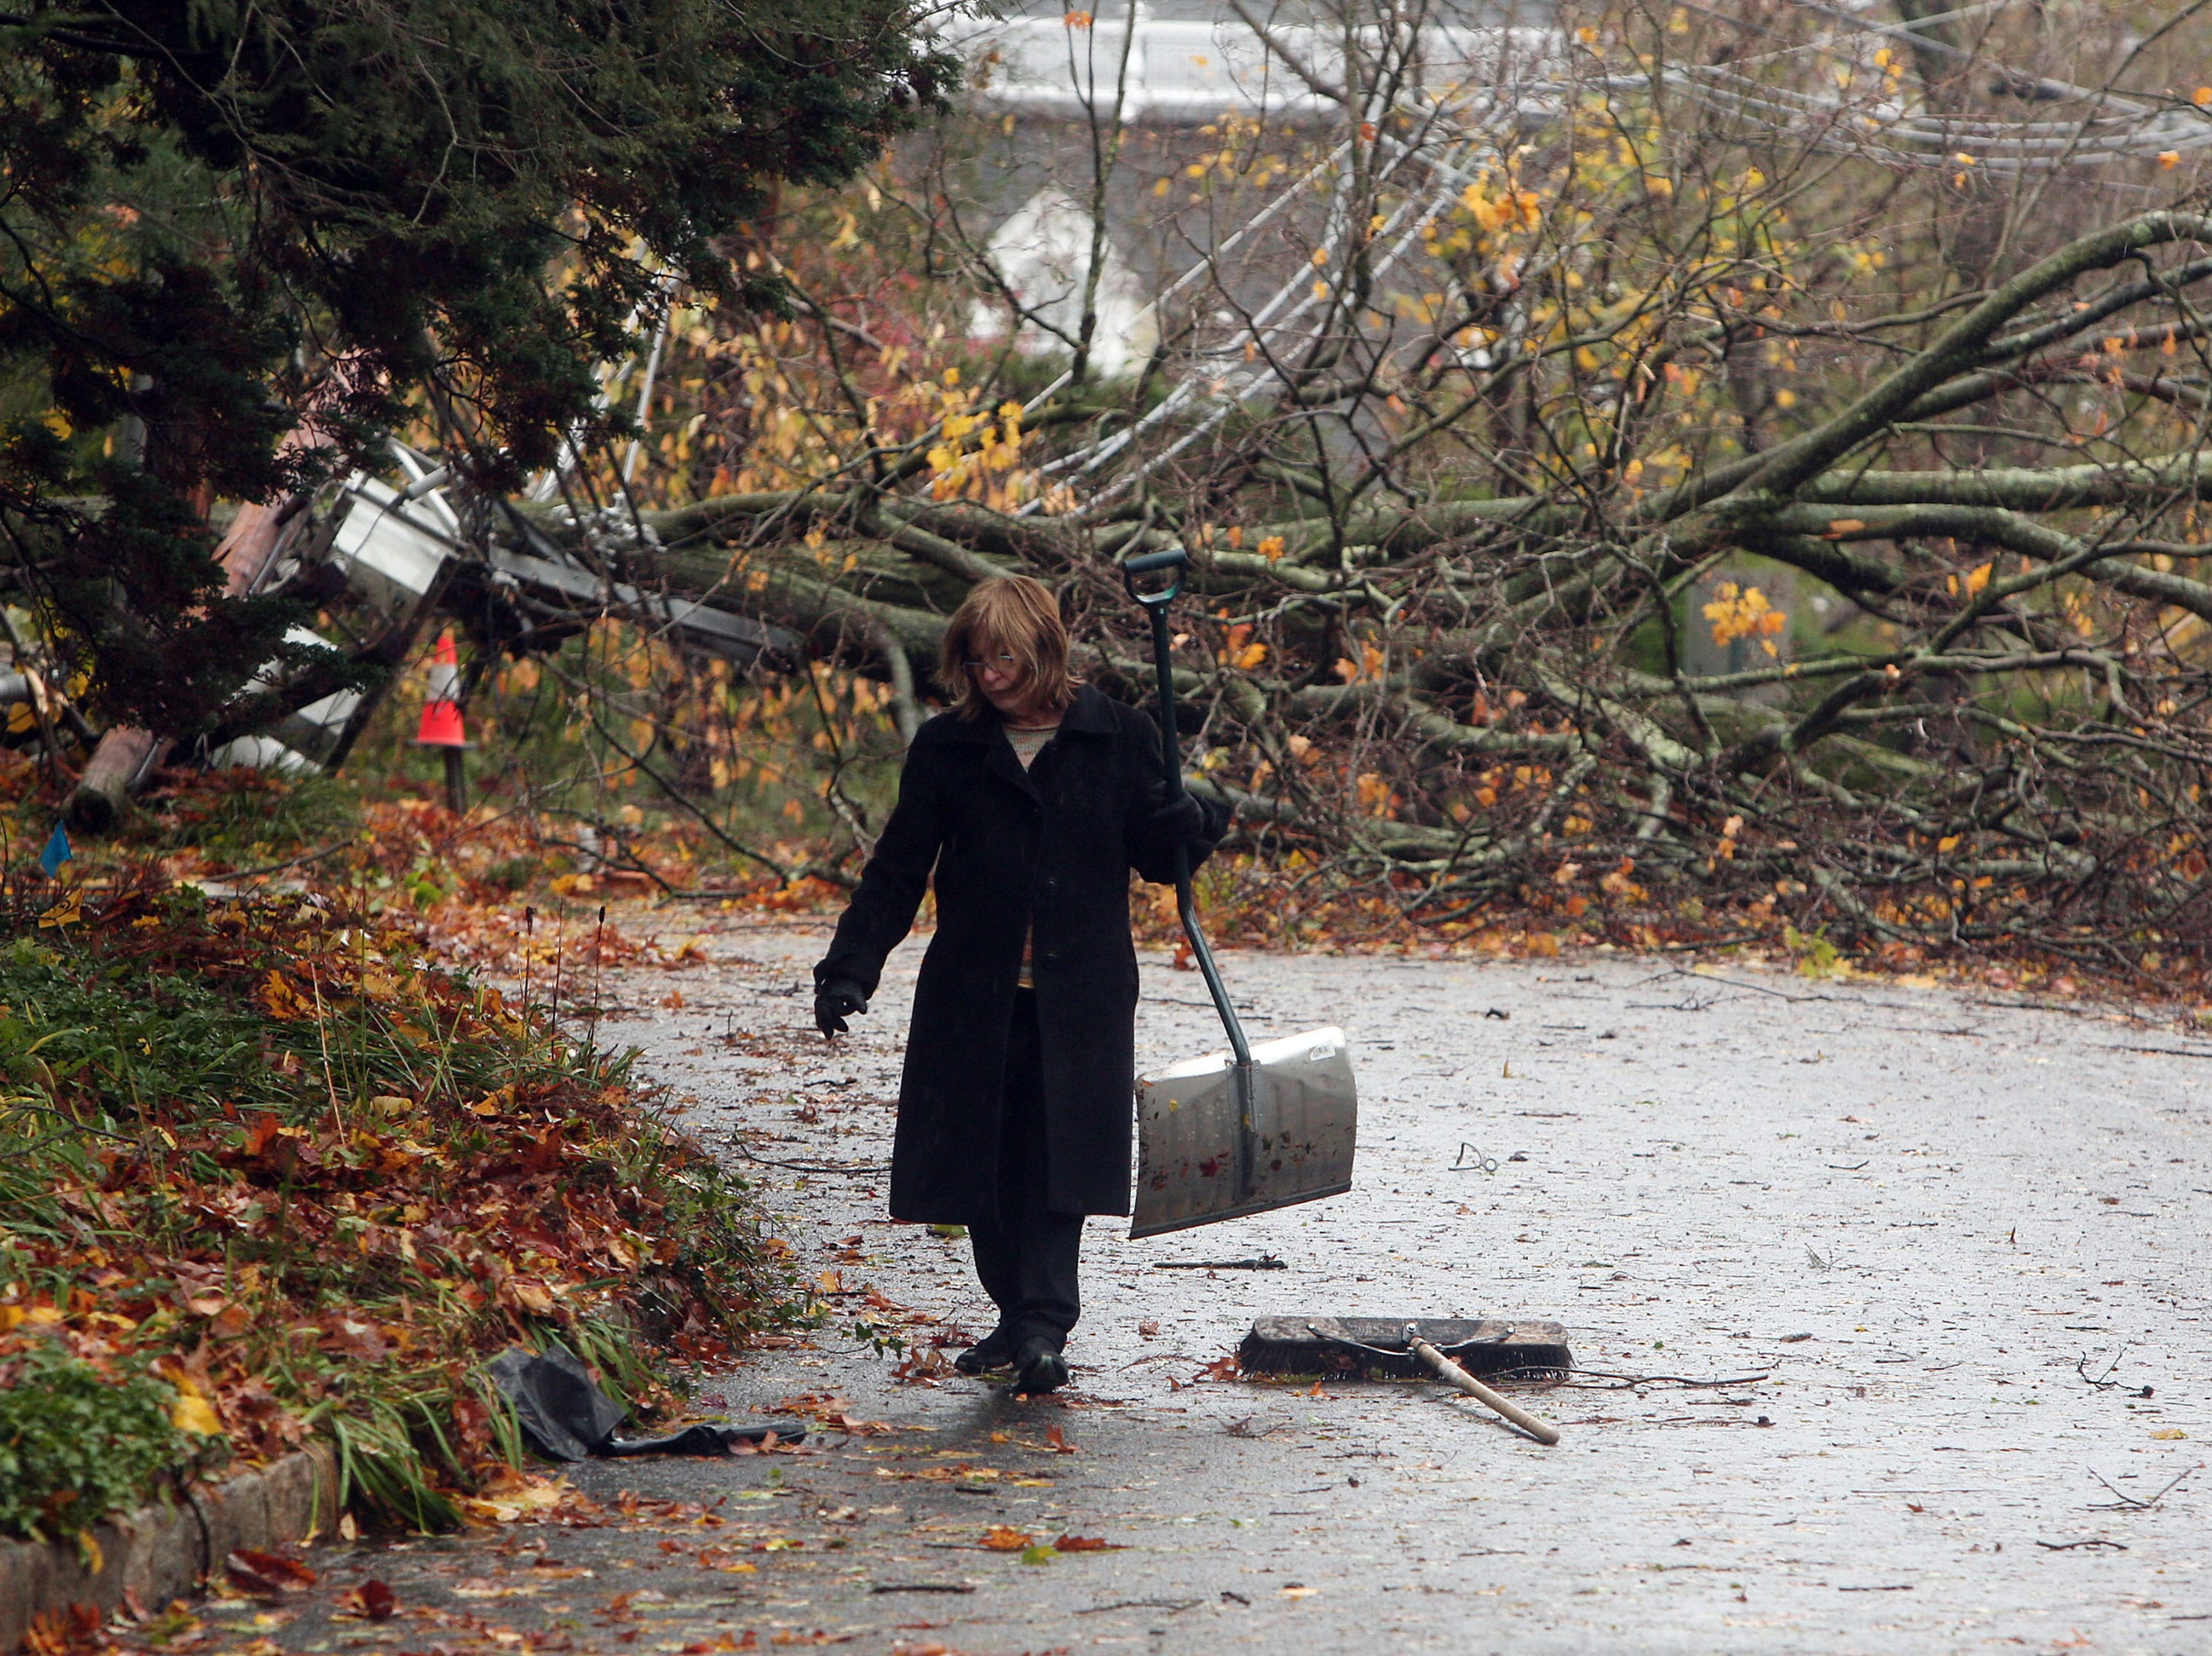 Morristown, NJ-- October 30, 2012--Pat Podell of Morristown, NJ clears the street of fallen leaves on Ogden Street in the aftermath of Hurricane Sandy. Bob Karp/Staff Photographer/DAILY RECORD